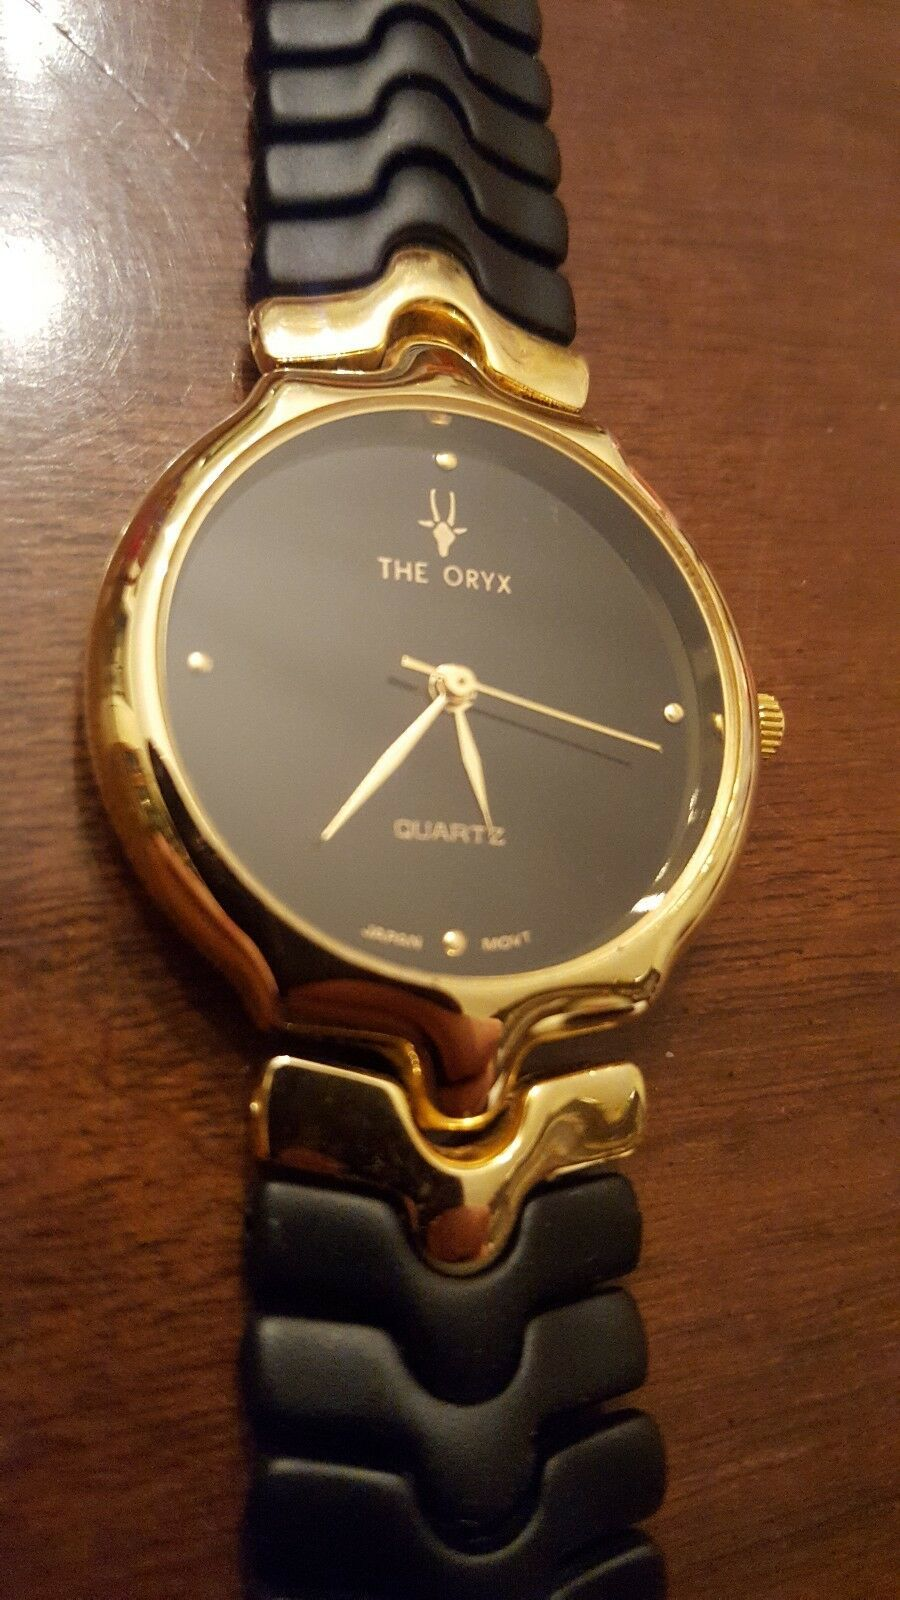 VINTAGE THE ORYX QUARTZ GOLD & BLACK FLEX BAND WRIST WATCH JAPANESE MOVEMENT